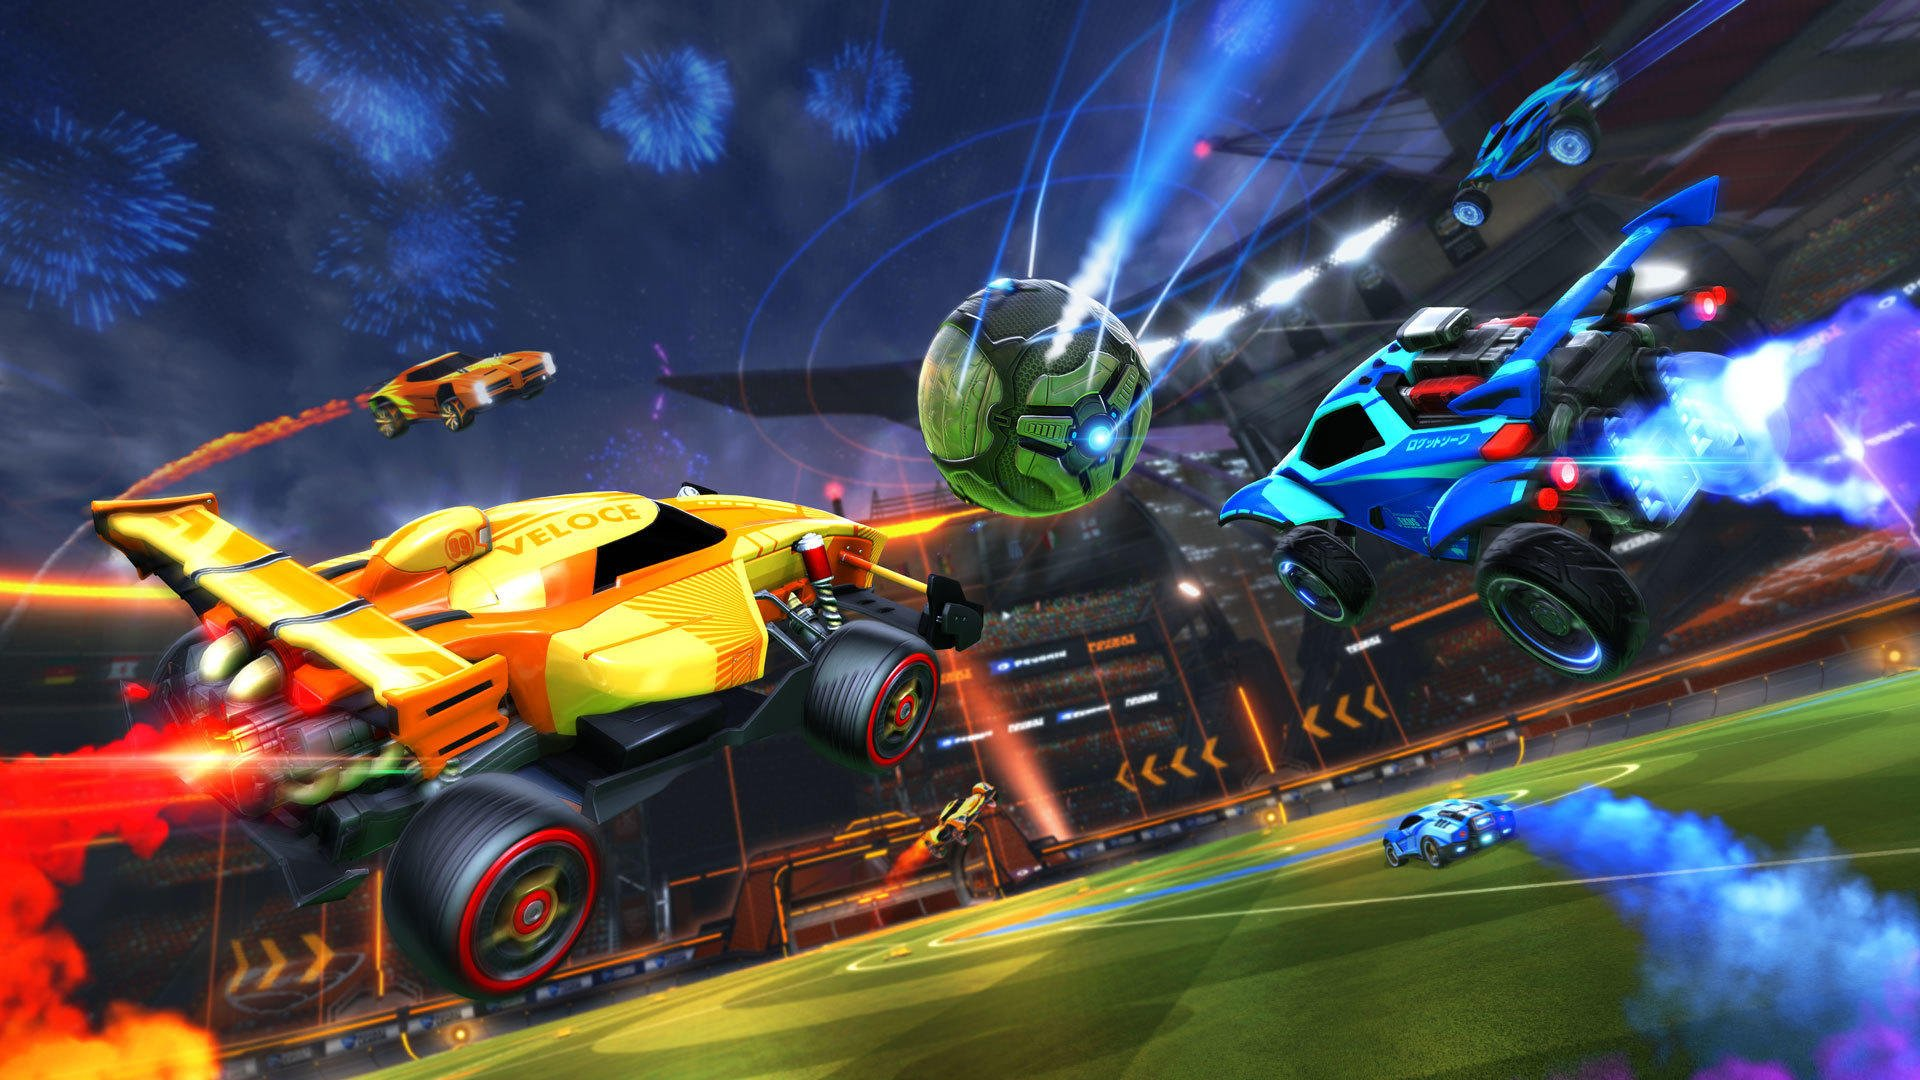 Full cross-platform support now available in Rocket League.